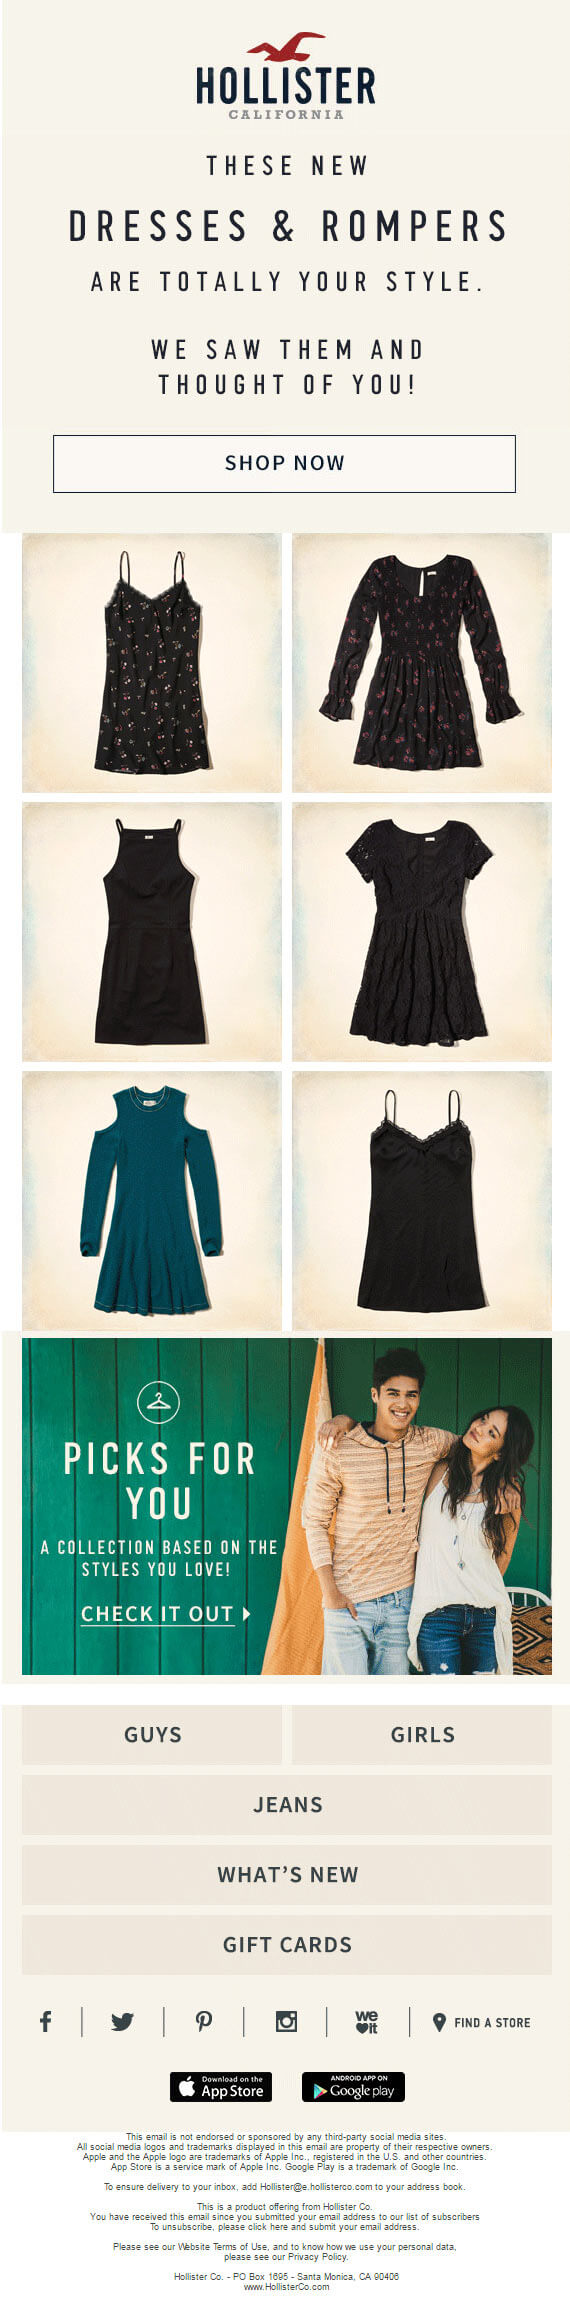 email personalization - hollister